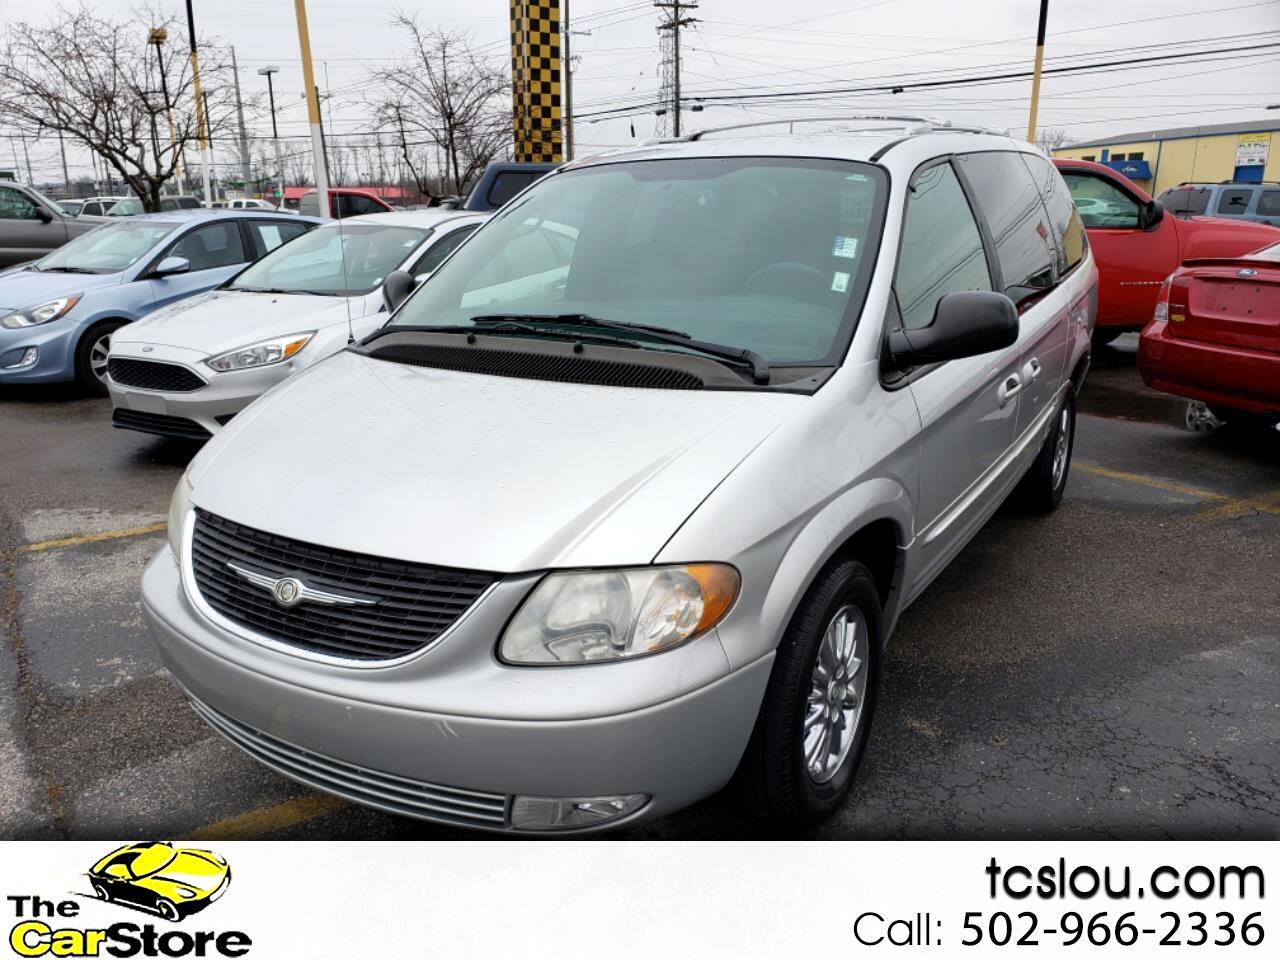 2003 Chrysler Town & Country 4dr Limited FWD